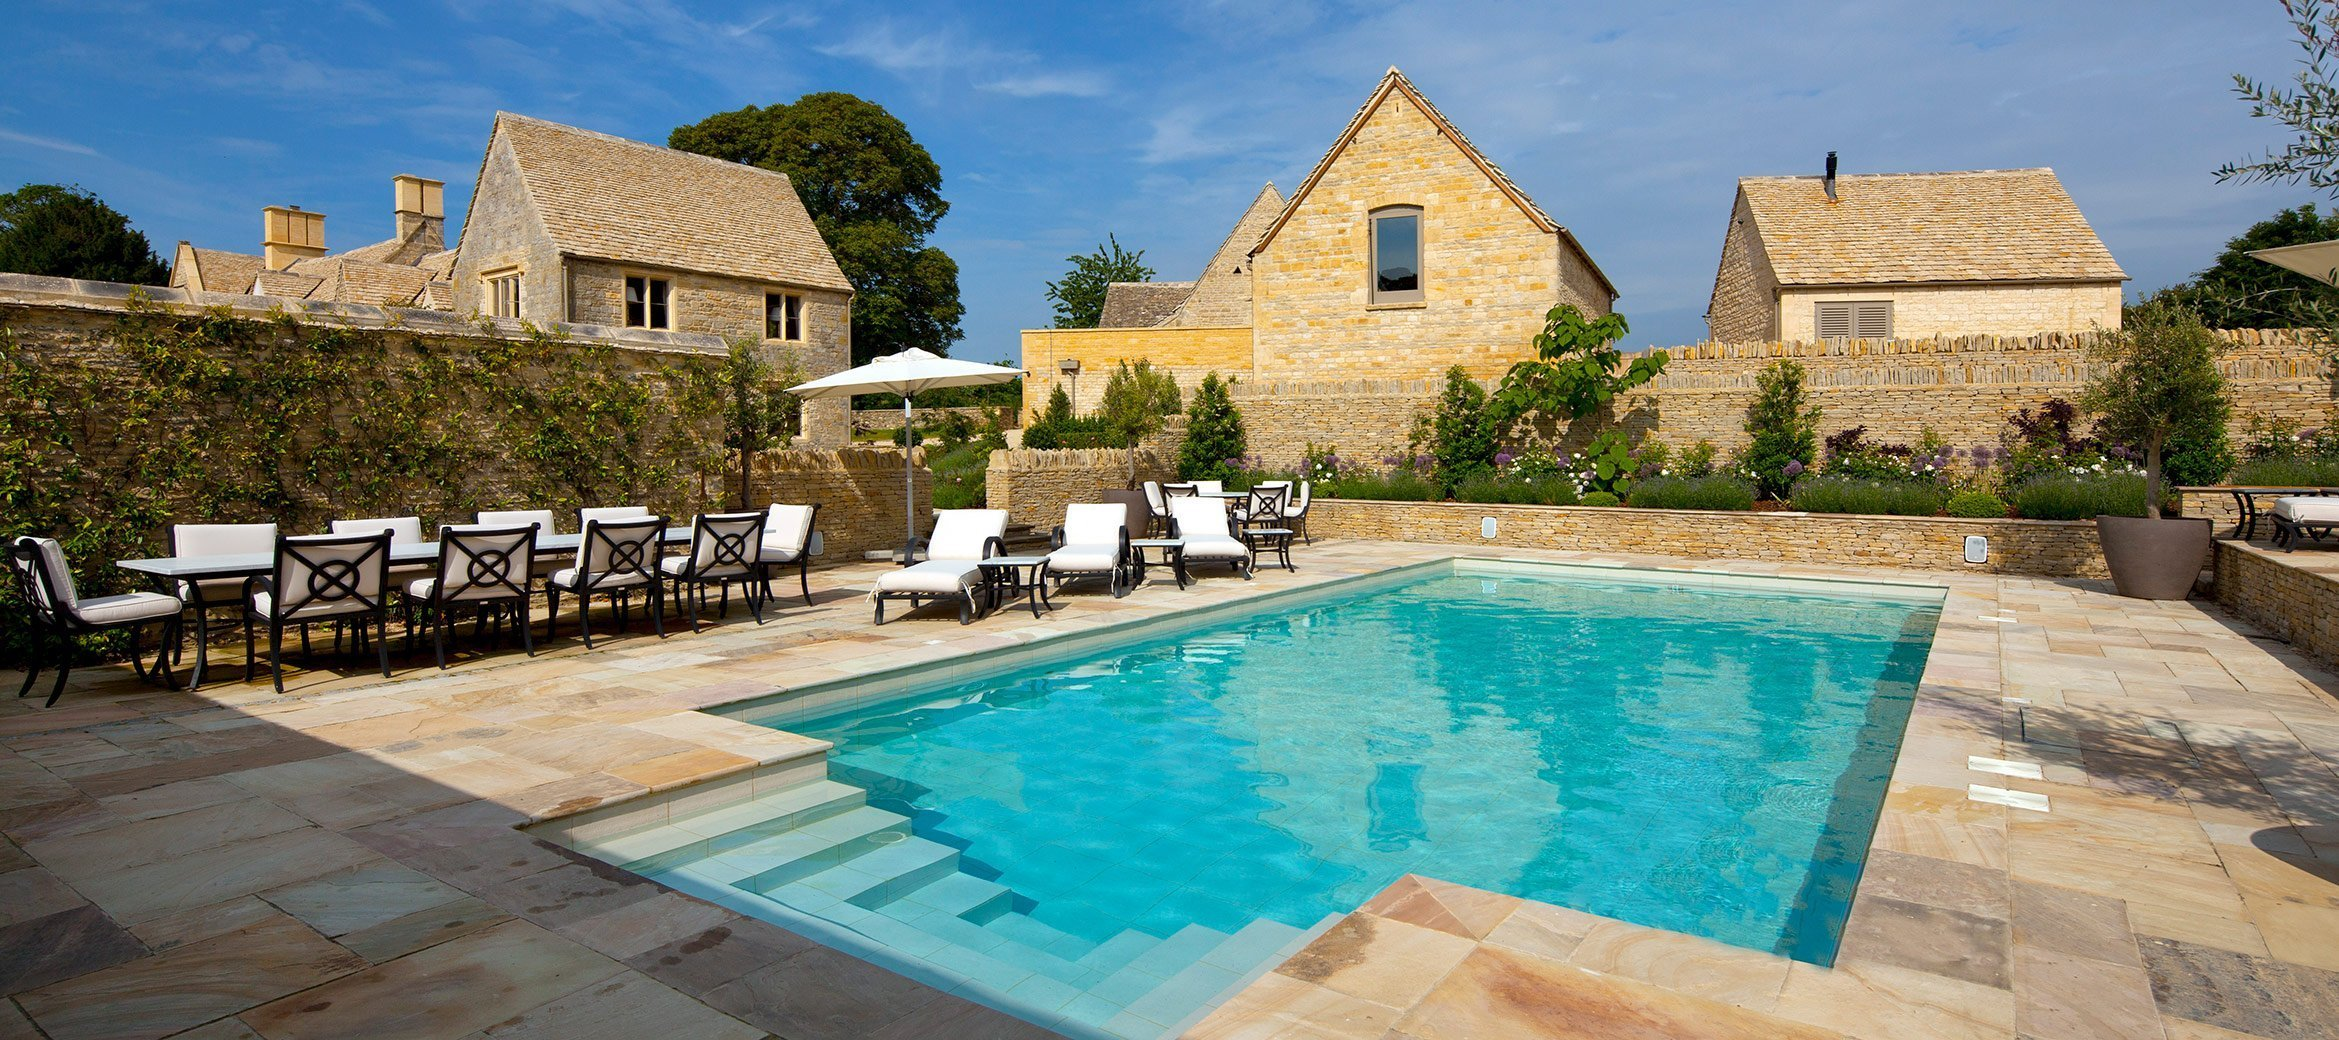 luxury-cotswold-farmhouse-swimming-pool